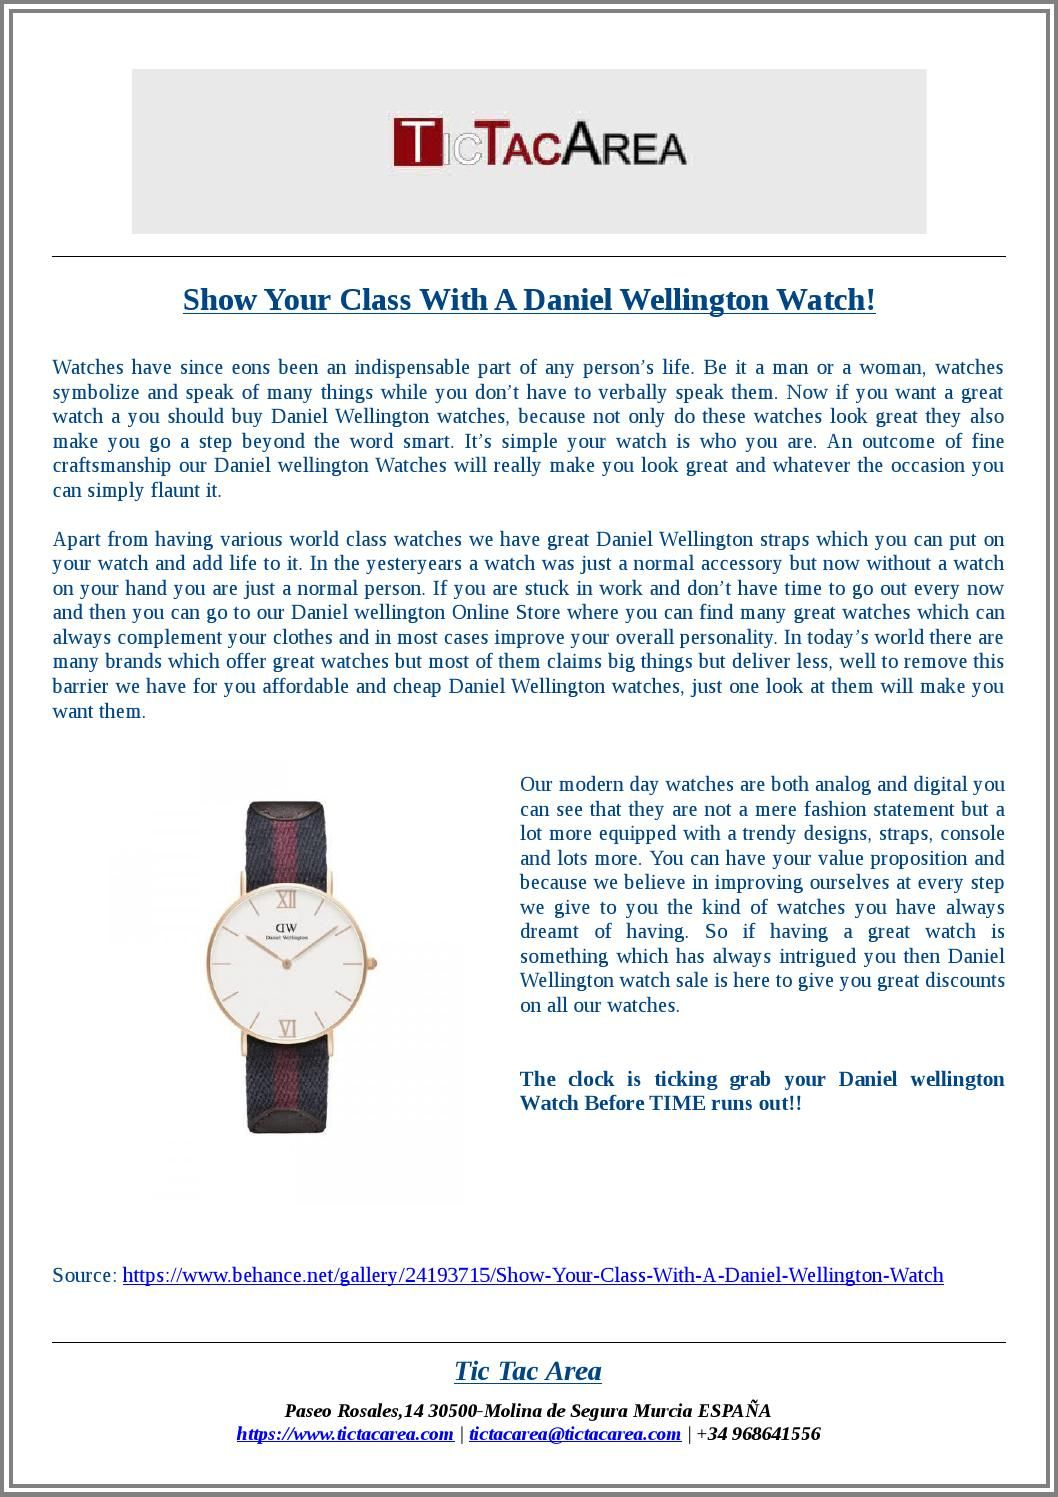 Tic Tac Area: Show Your Class With A Daniel Wellington Watch!  Now if you want a great watch a you should buy Daniel Wellington watches, because not only do these watches look great they also make you go a step beyond the word smart.